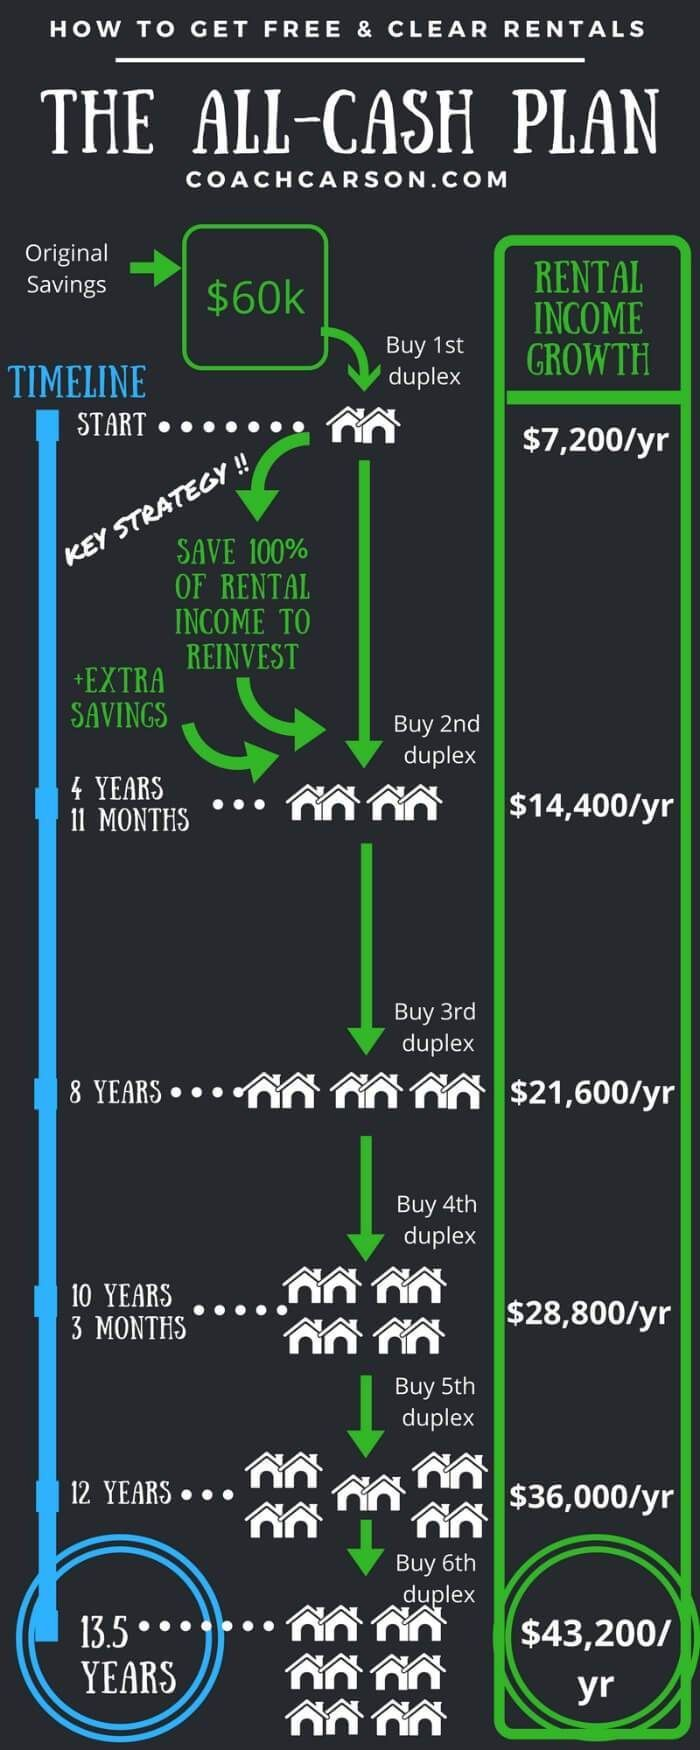 Here is an infographic that shows the simple plan and the fantastic financial results: